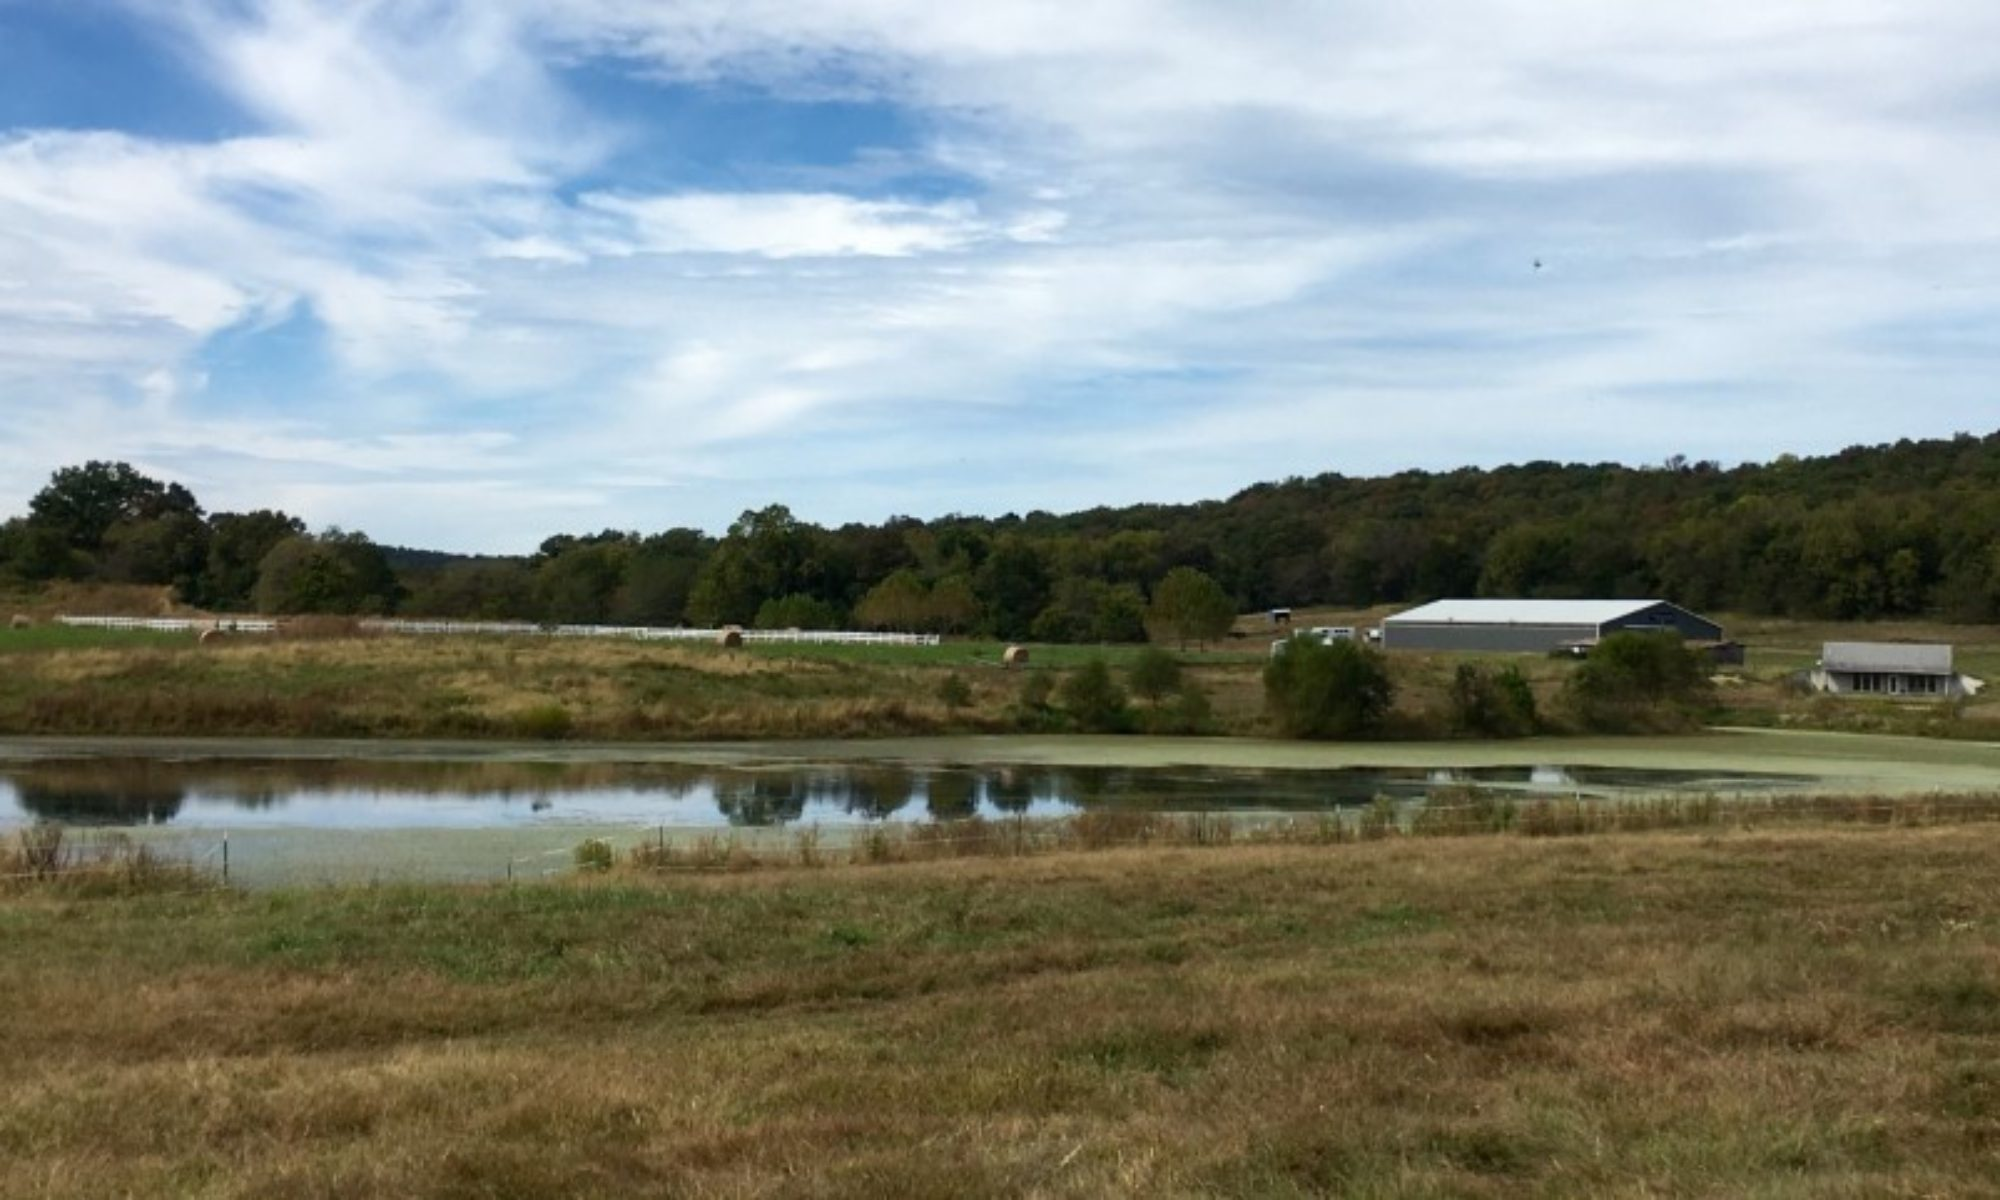 Greystone Equestrian Center